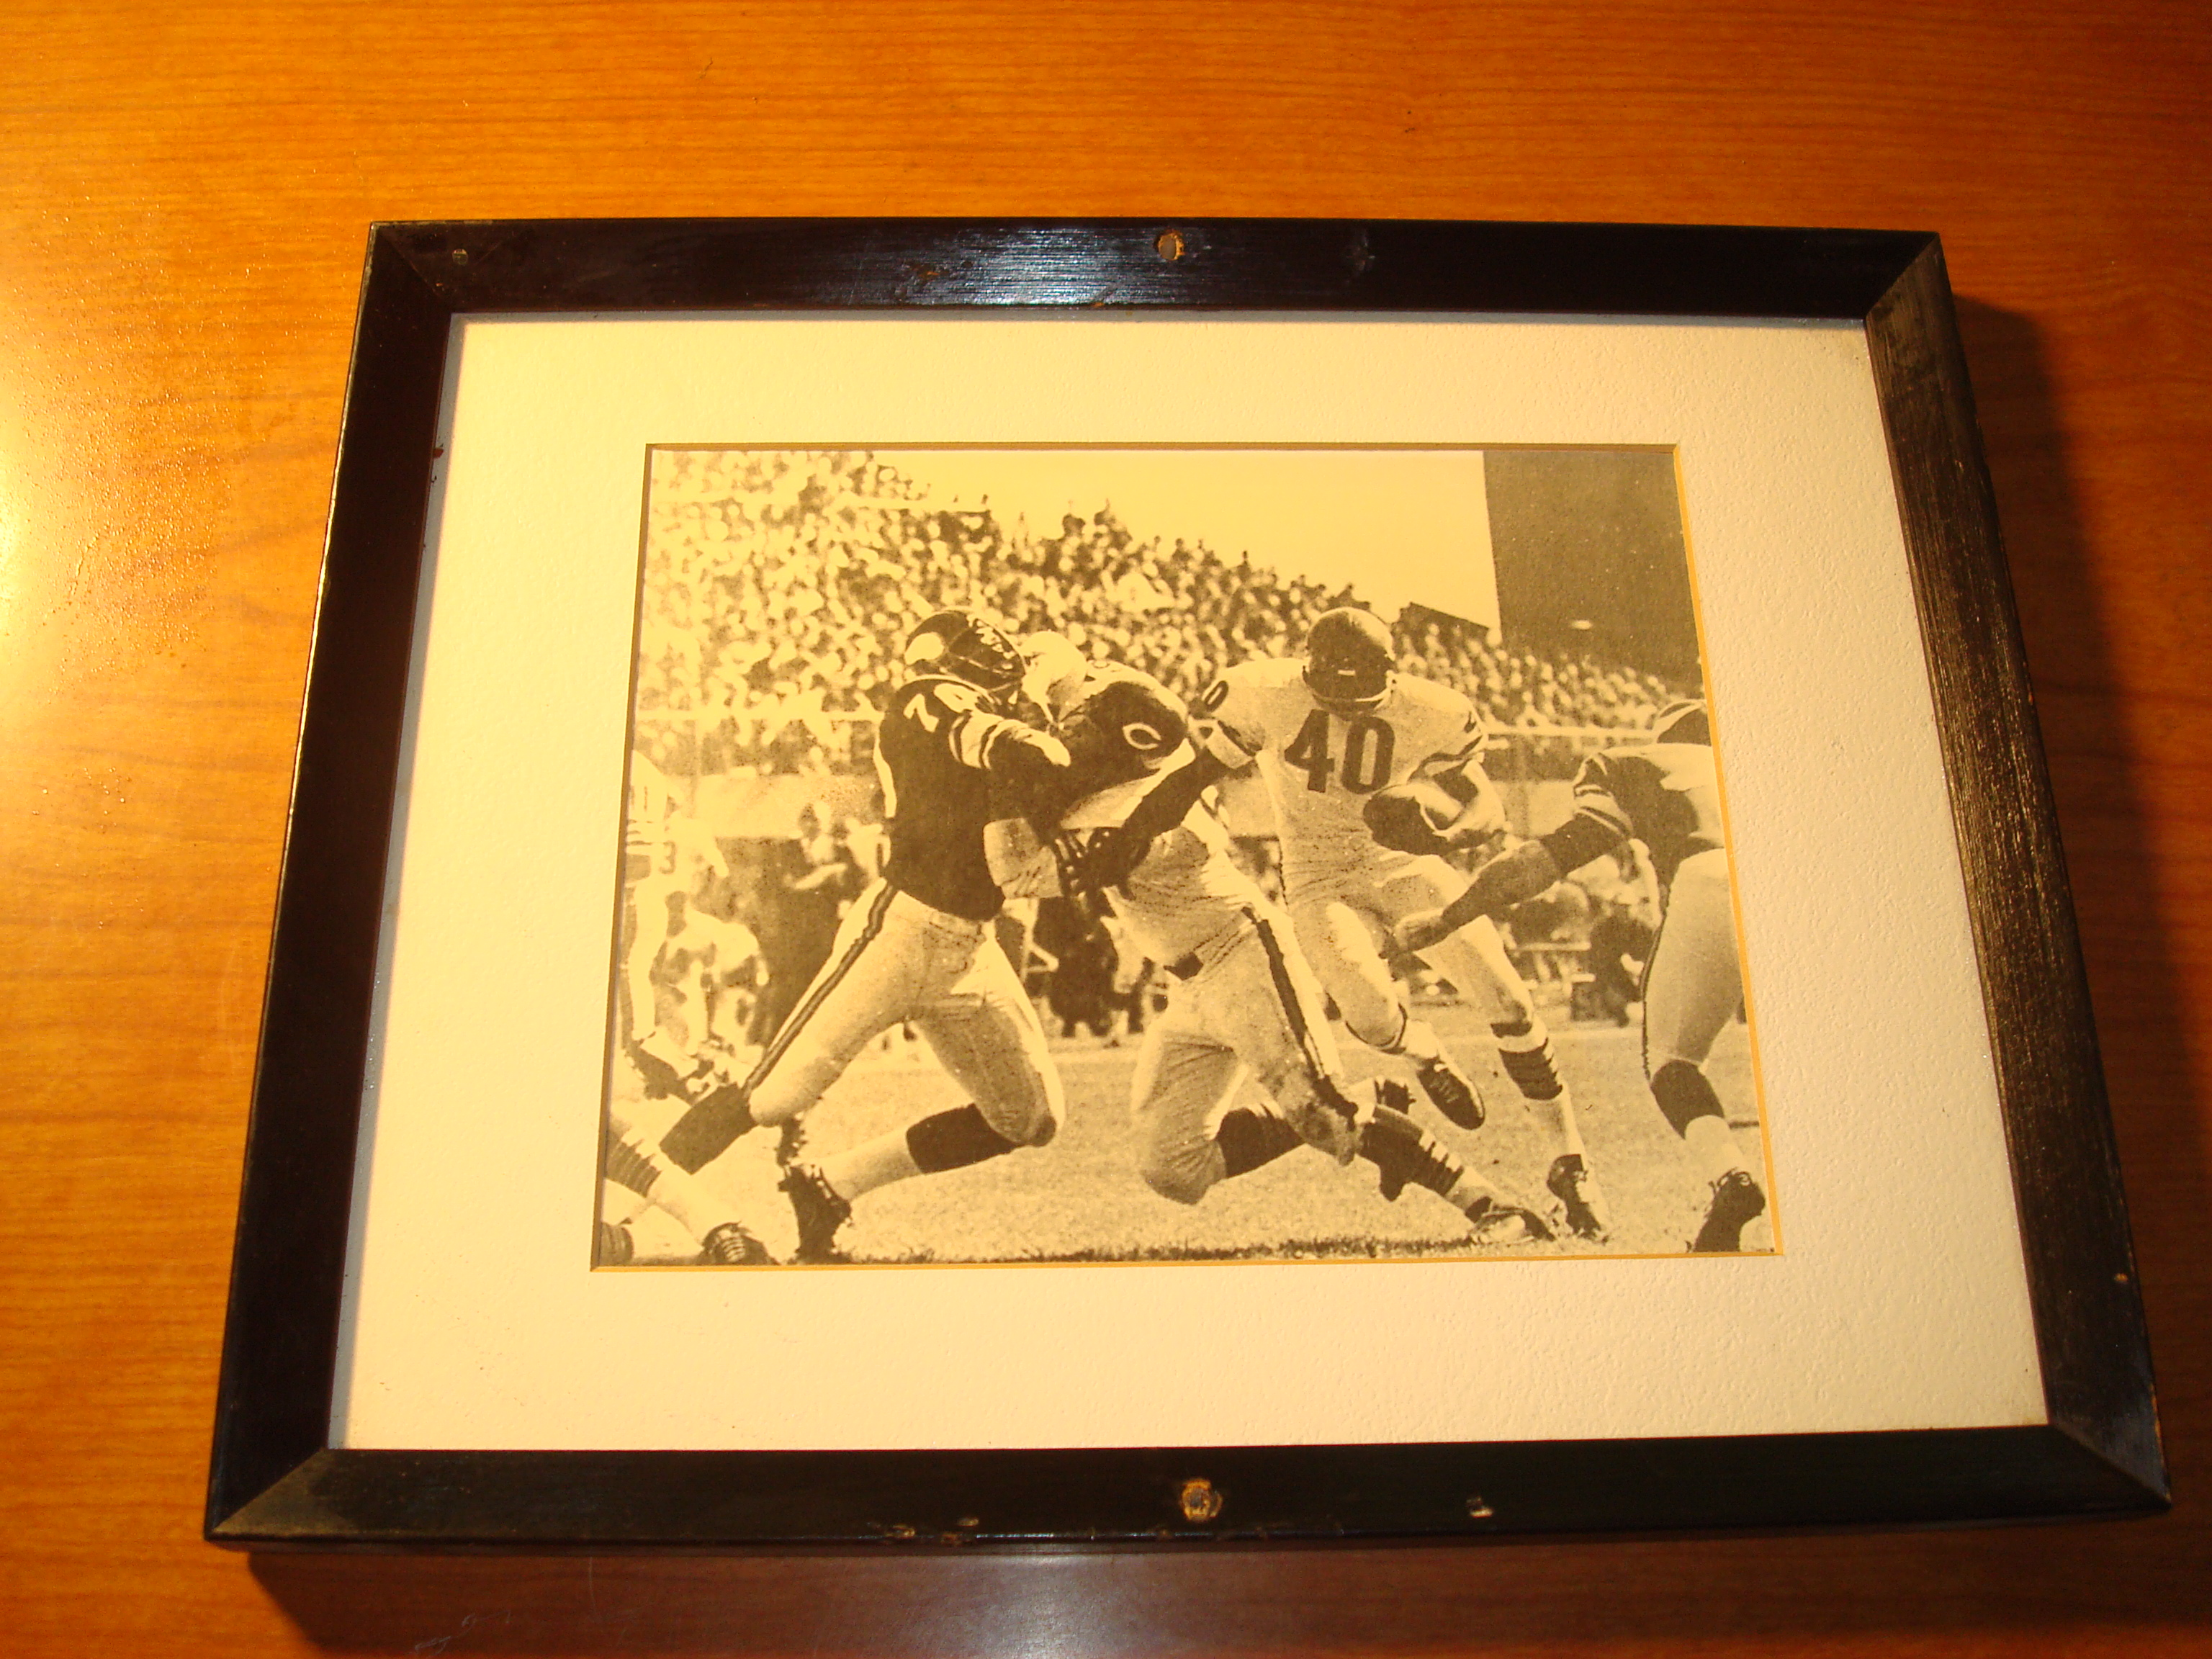 Bone Daddy S Nfl Framed Pictures Collection Pieces